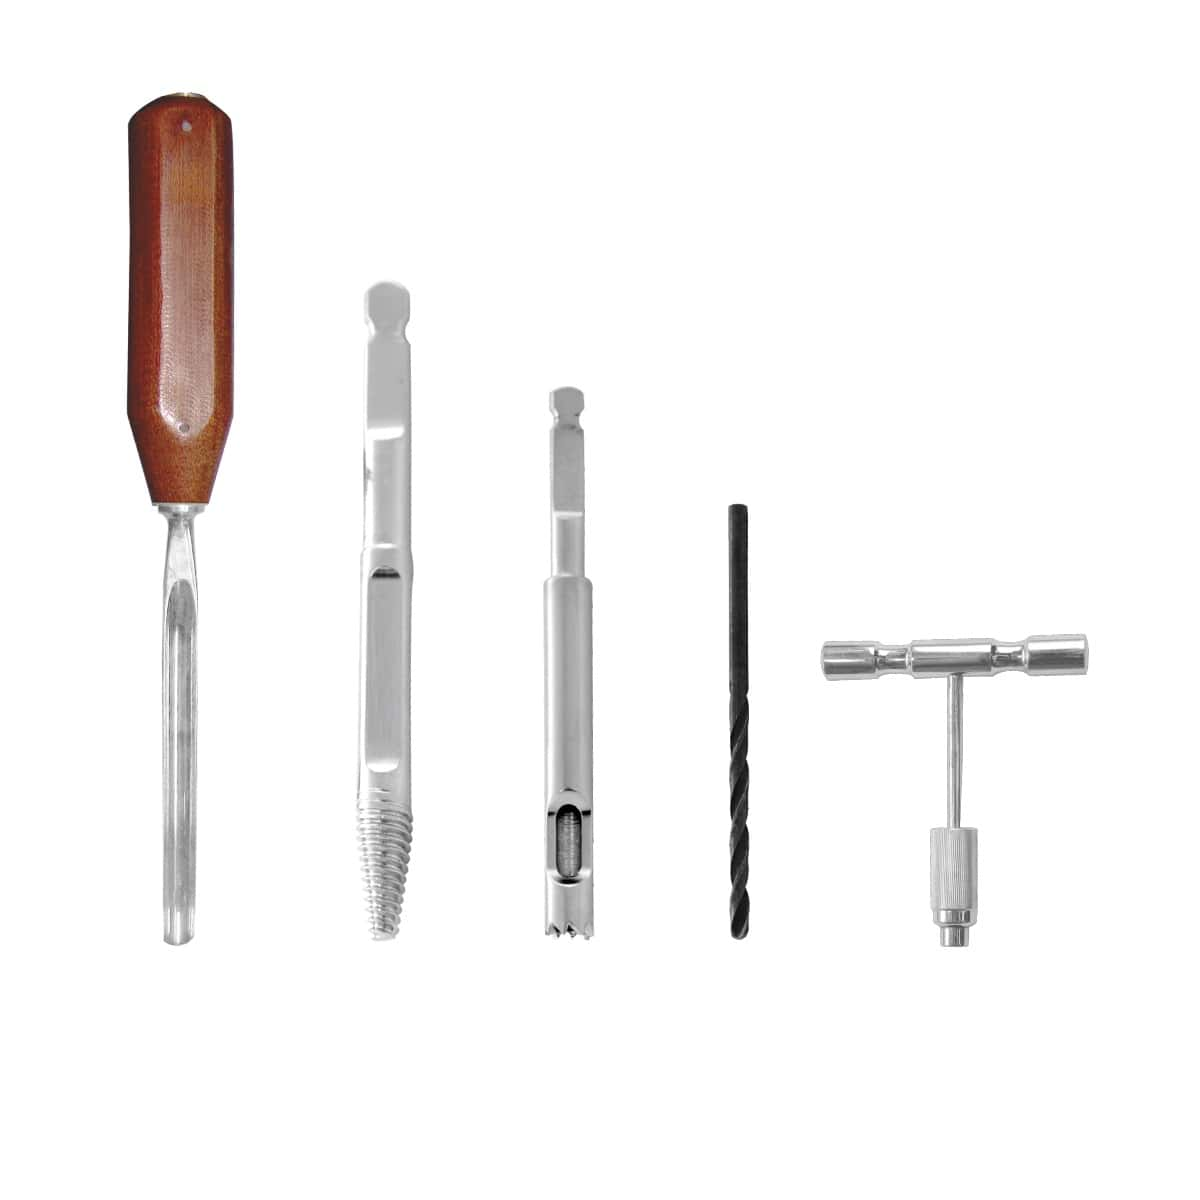 Broken Screw Removal Instruments